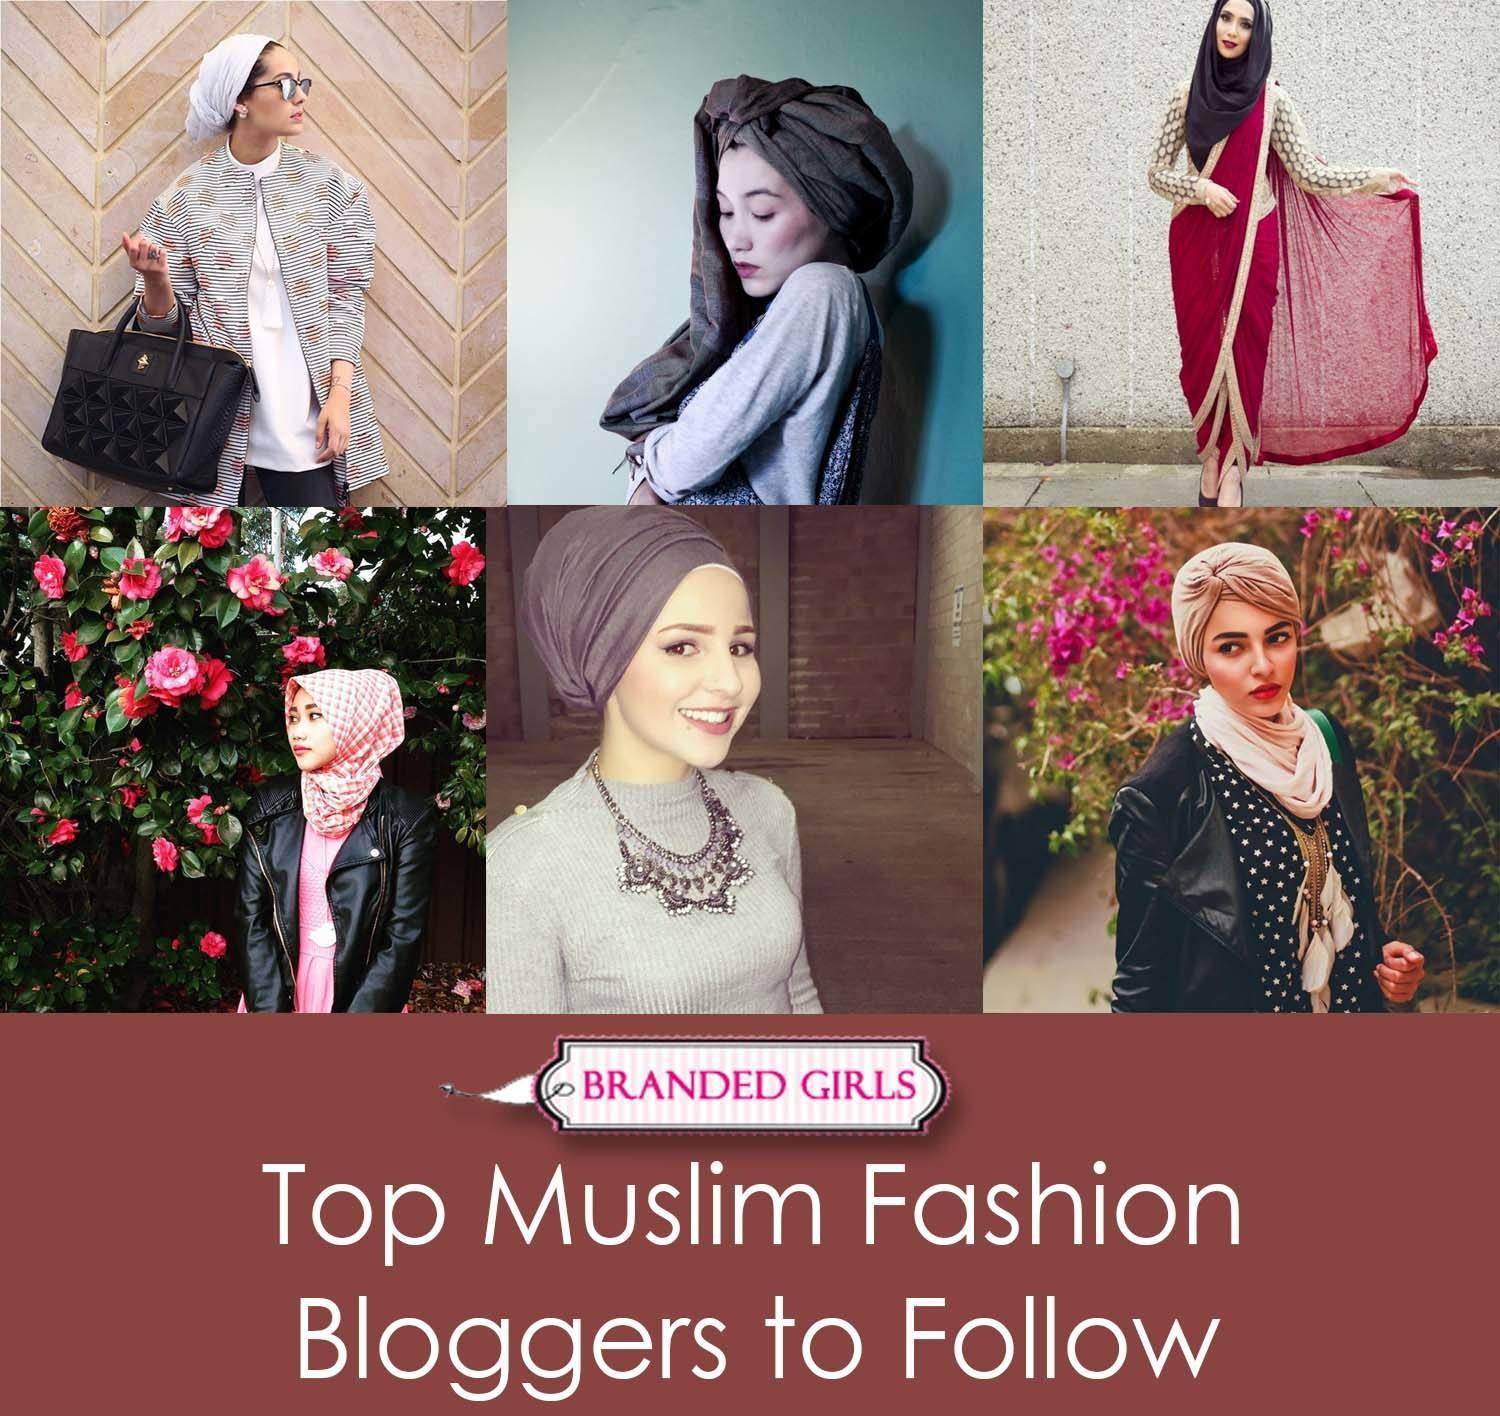 top-muslim-fashion-bloggers-to-follow Muslim Fashion Bloggers-15 Popular Islamic Bloggers to Follow